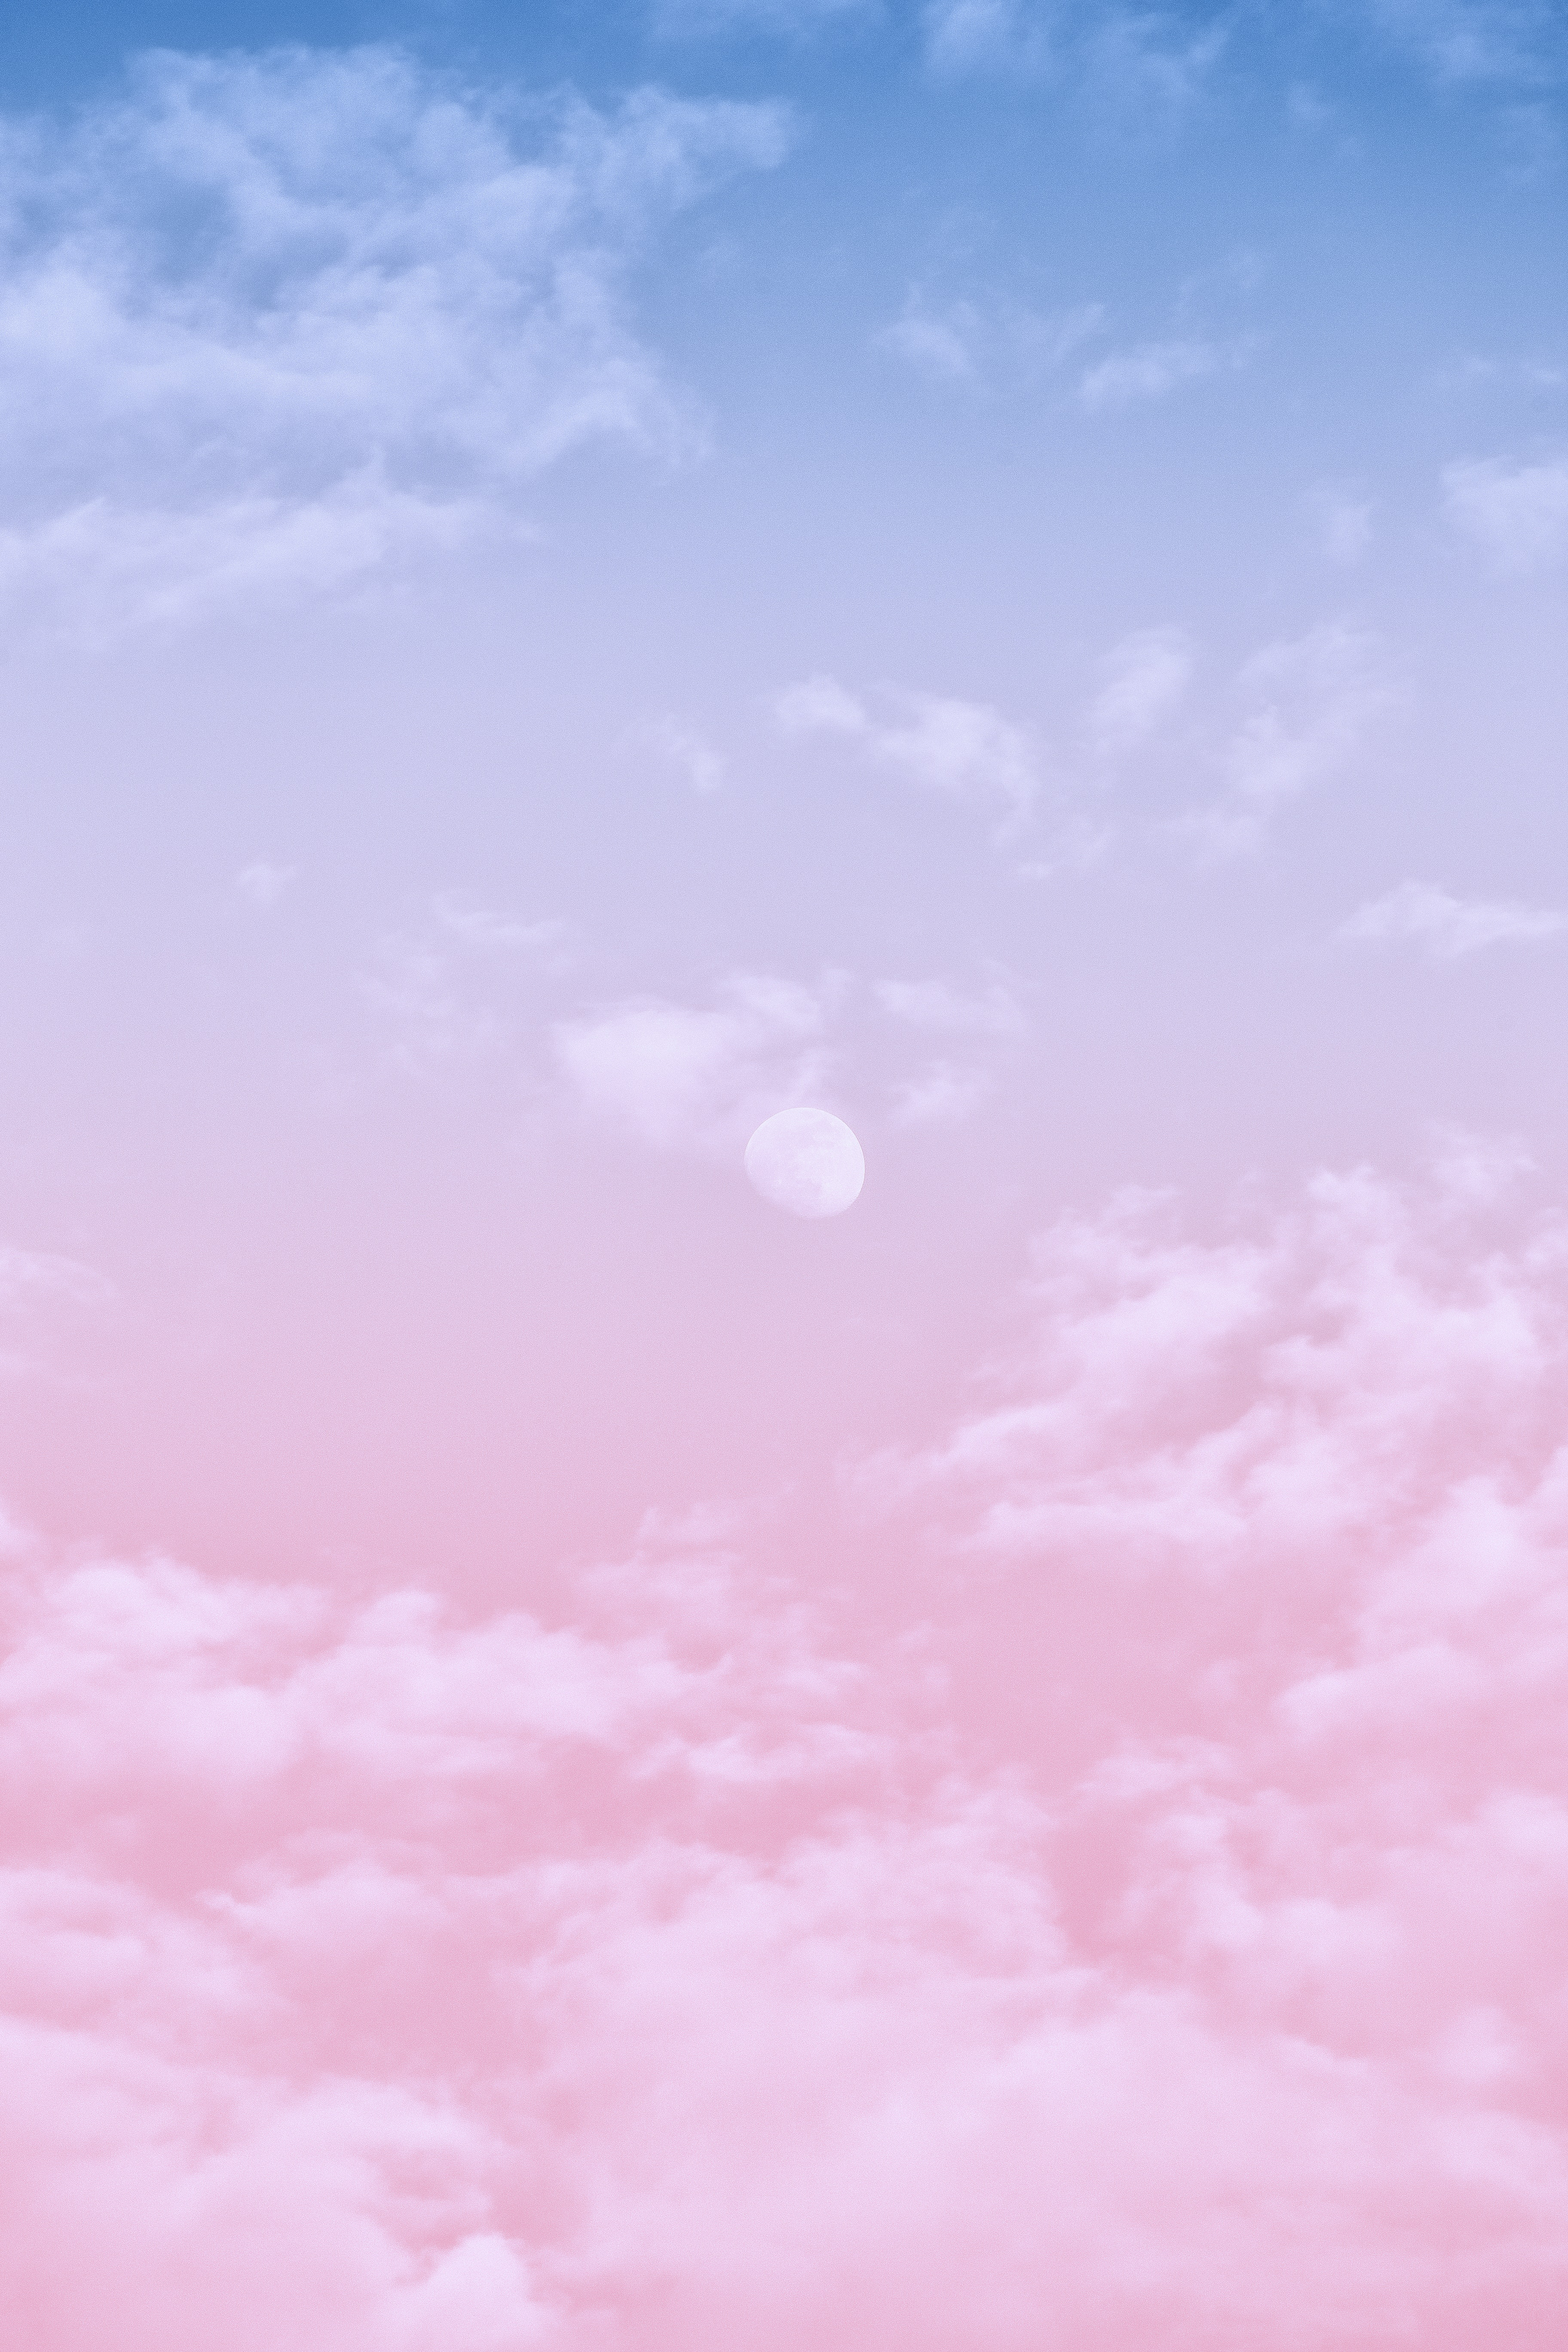 White Clouds In Pink And Blue Clouds · Free Stock